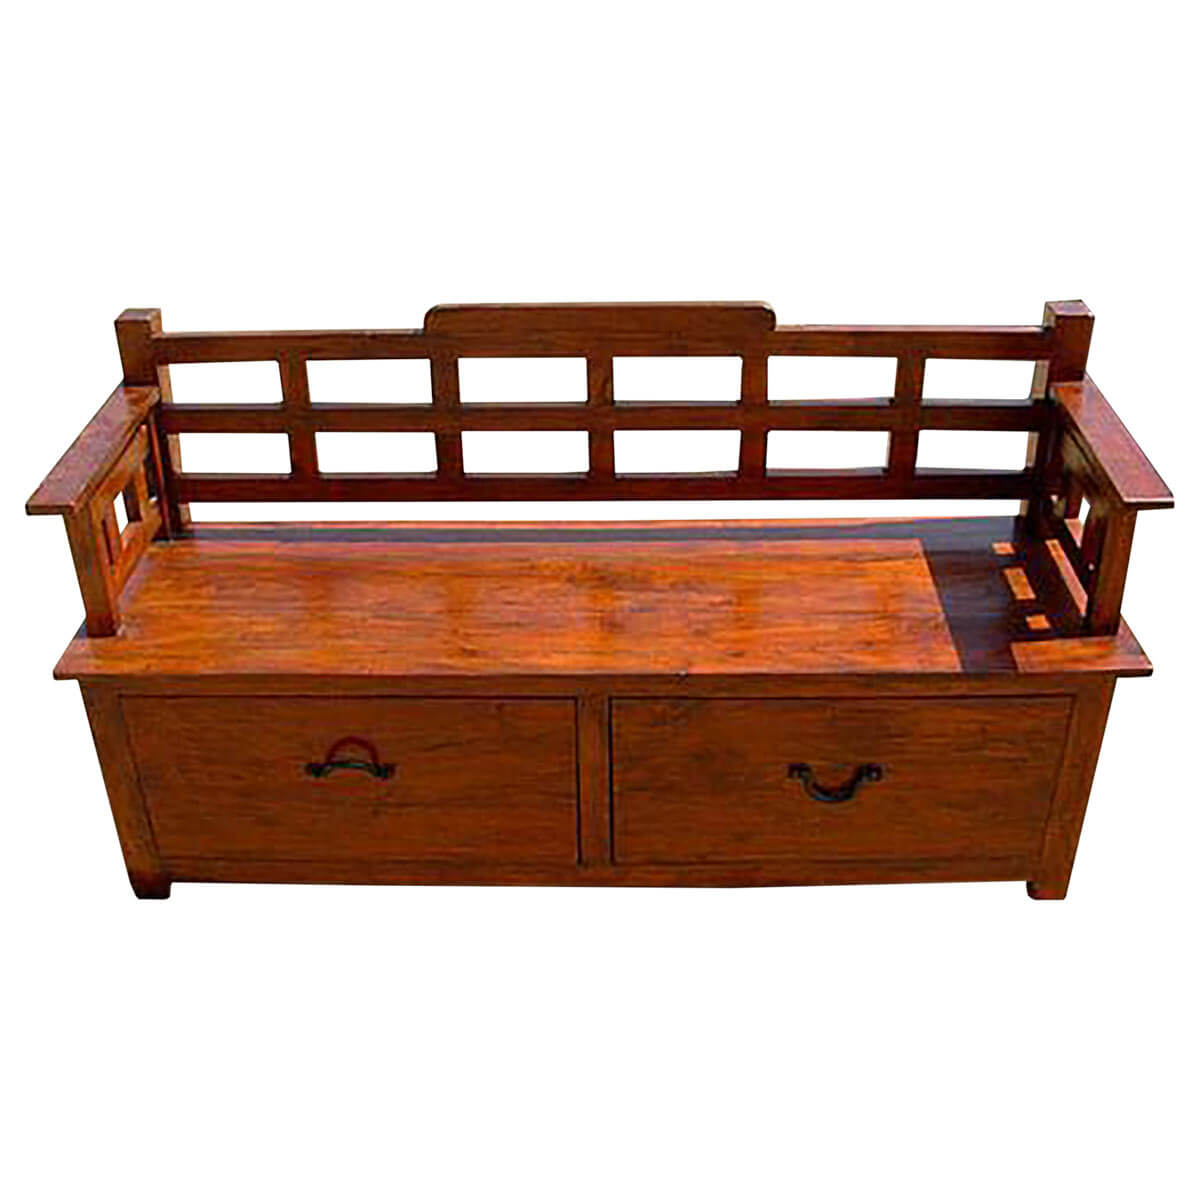 Rustic wood storage drawers sofa entry way long bench Bench sofa